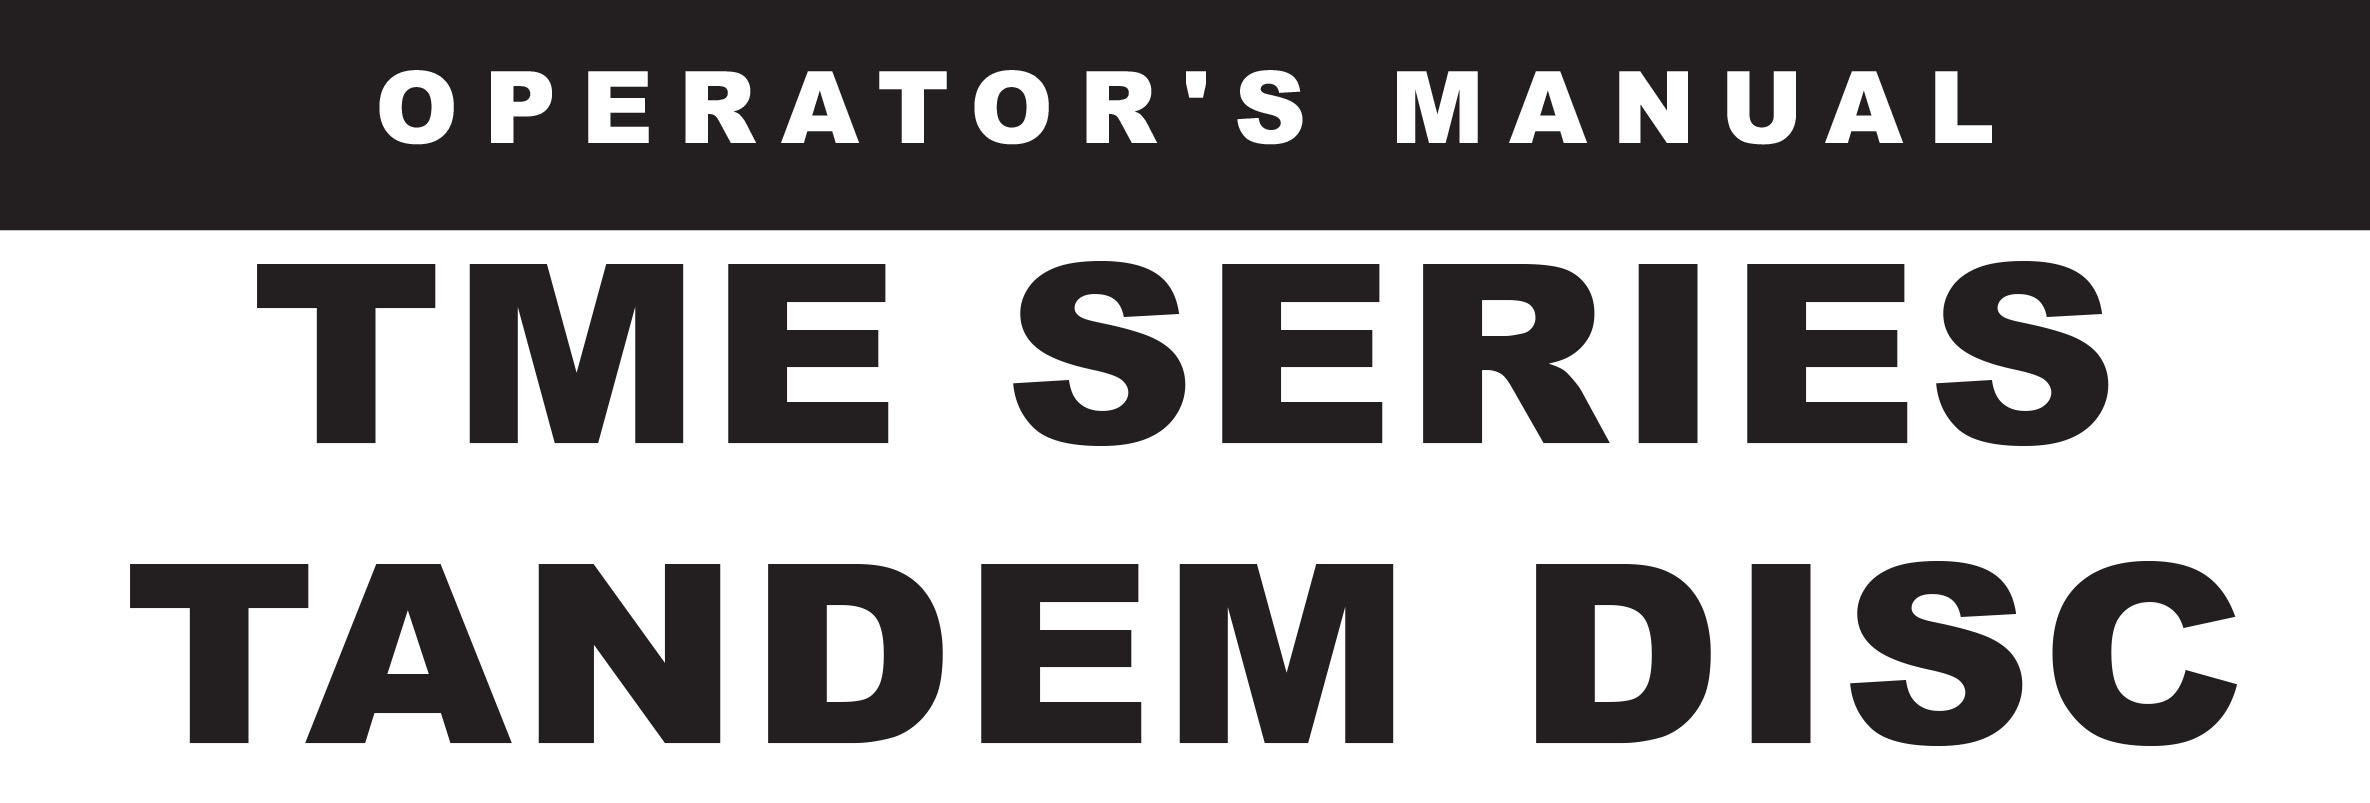 TME Series Owners Manual